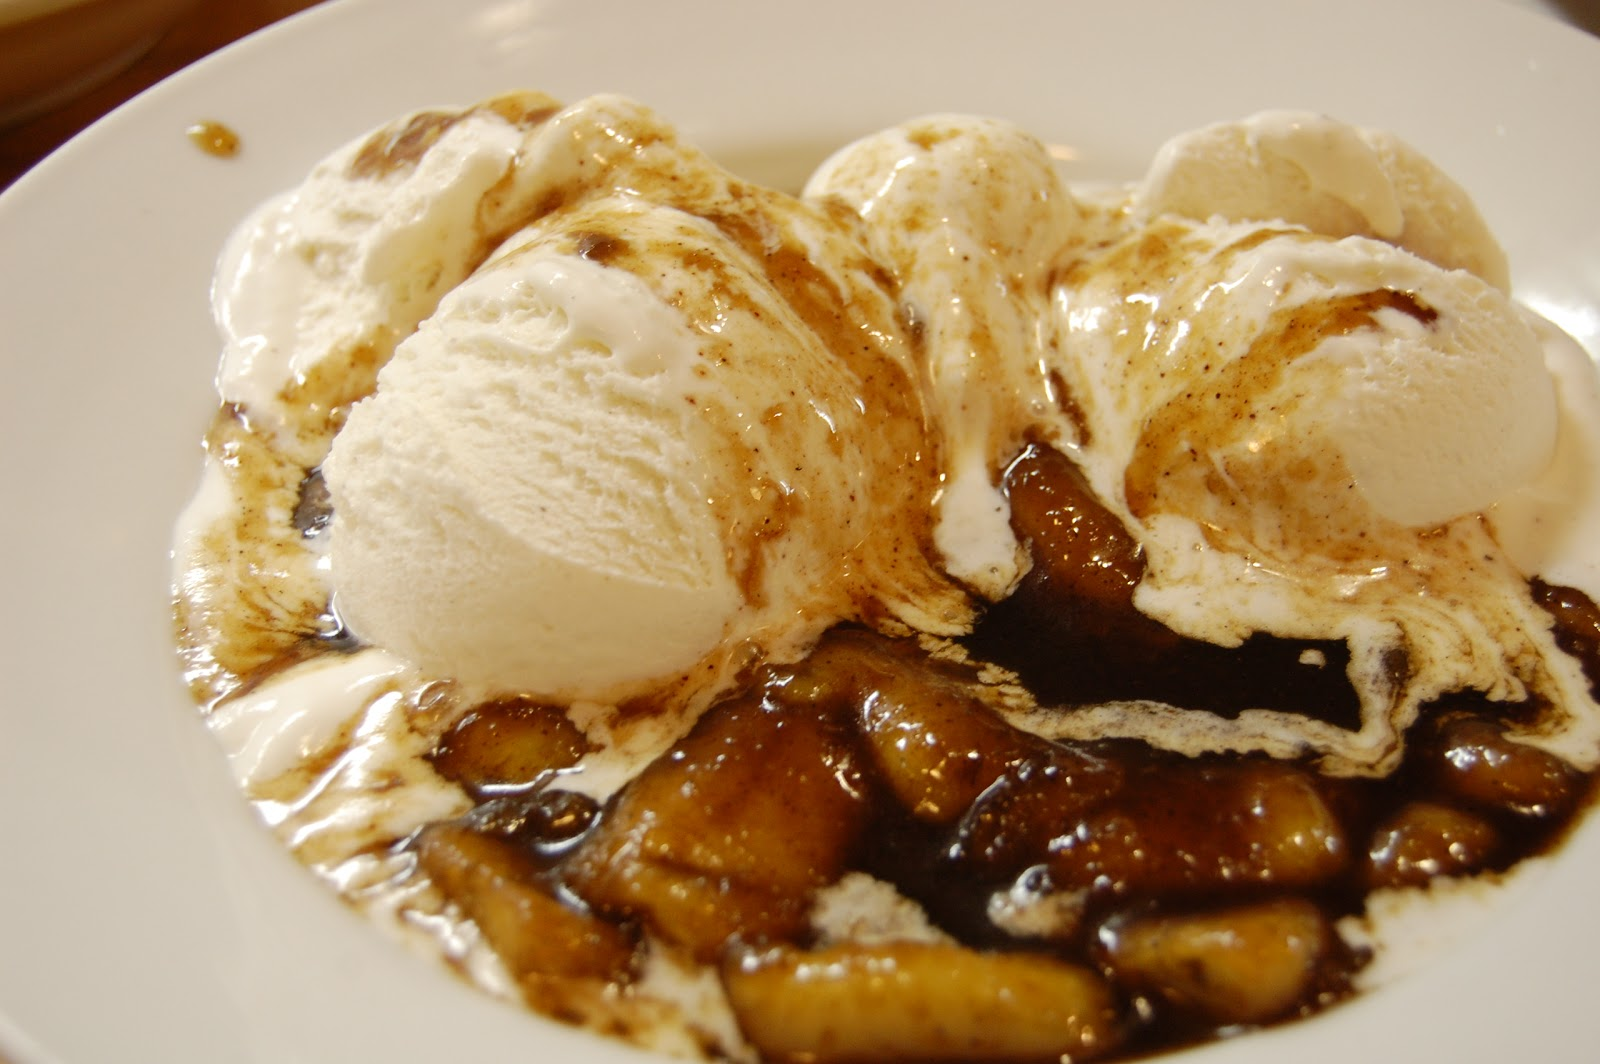 Bananas Foster Fascination | We Like to Cook!